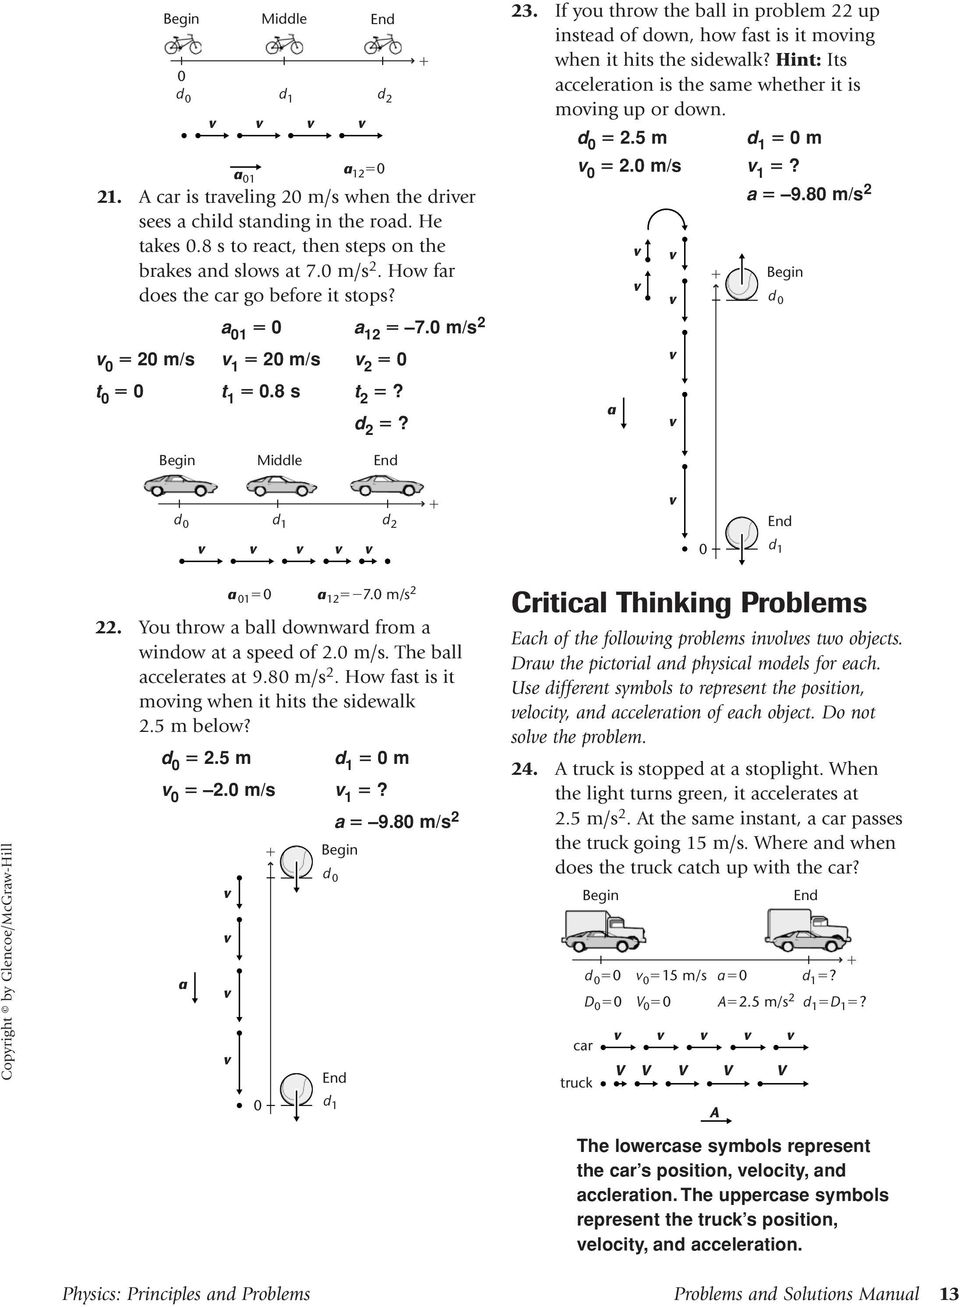 worksheet Velocity Worksheet 3 1 Answers glencoe physics principles and problems solutions if you throw the ball in problem 22 up instead of down how fast is